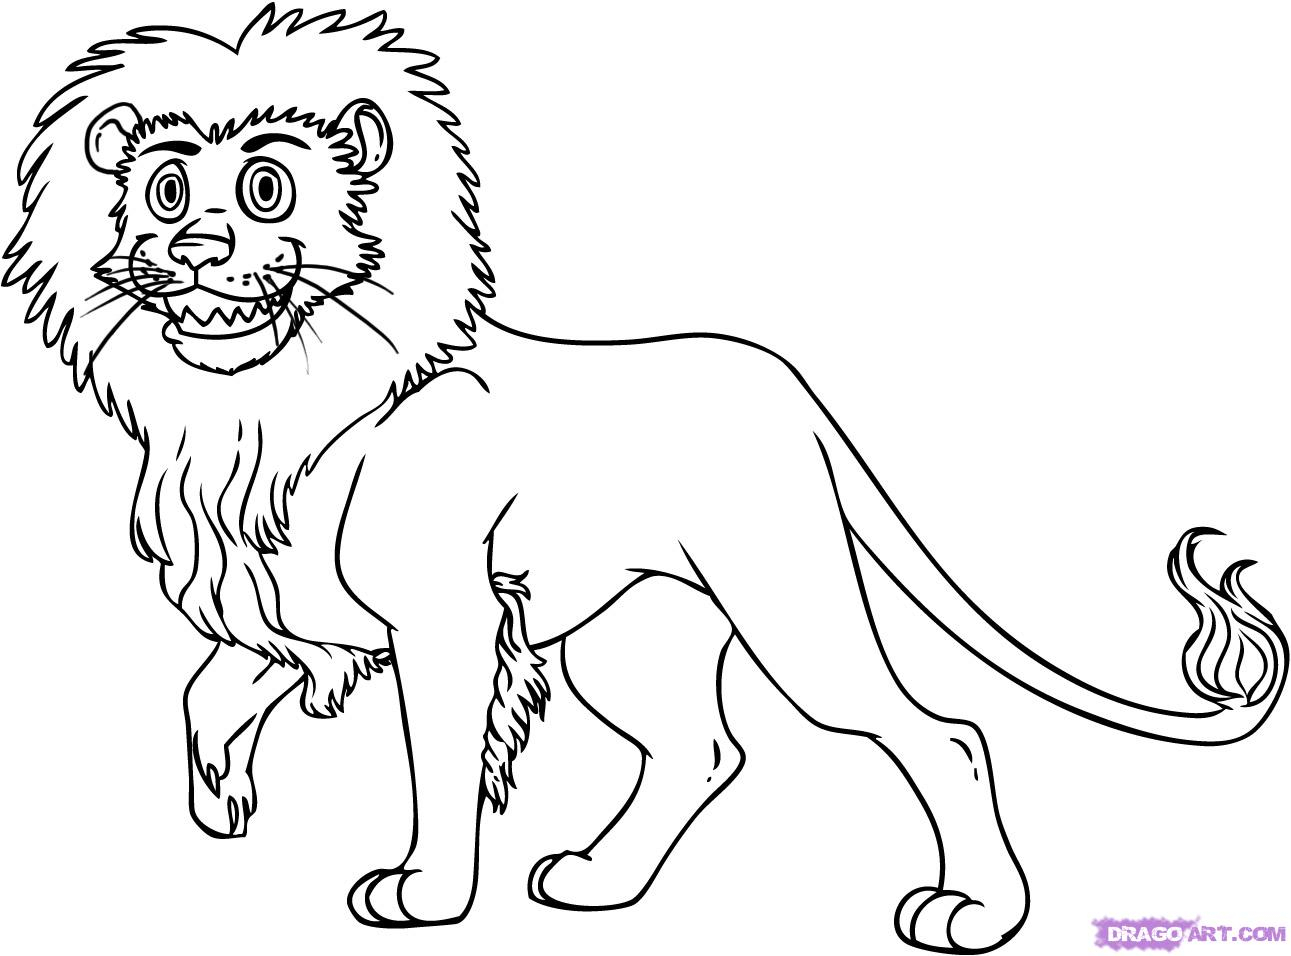 1291x956 Cartoon Lion Drawing How To Draw A Cartoon Lion, Step By Step